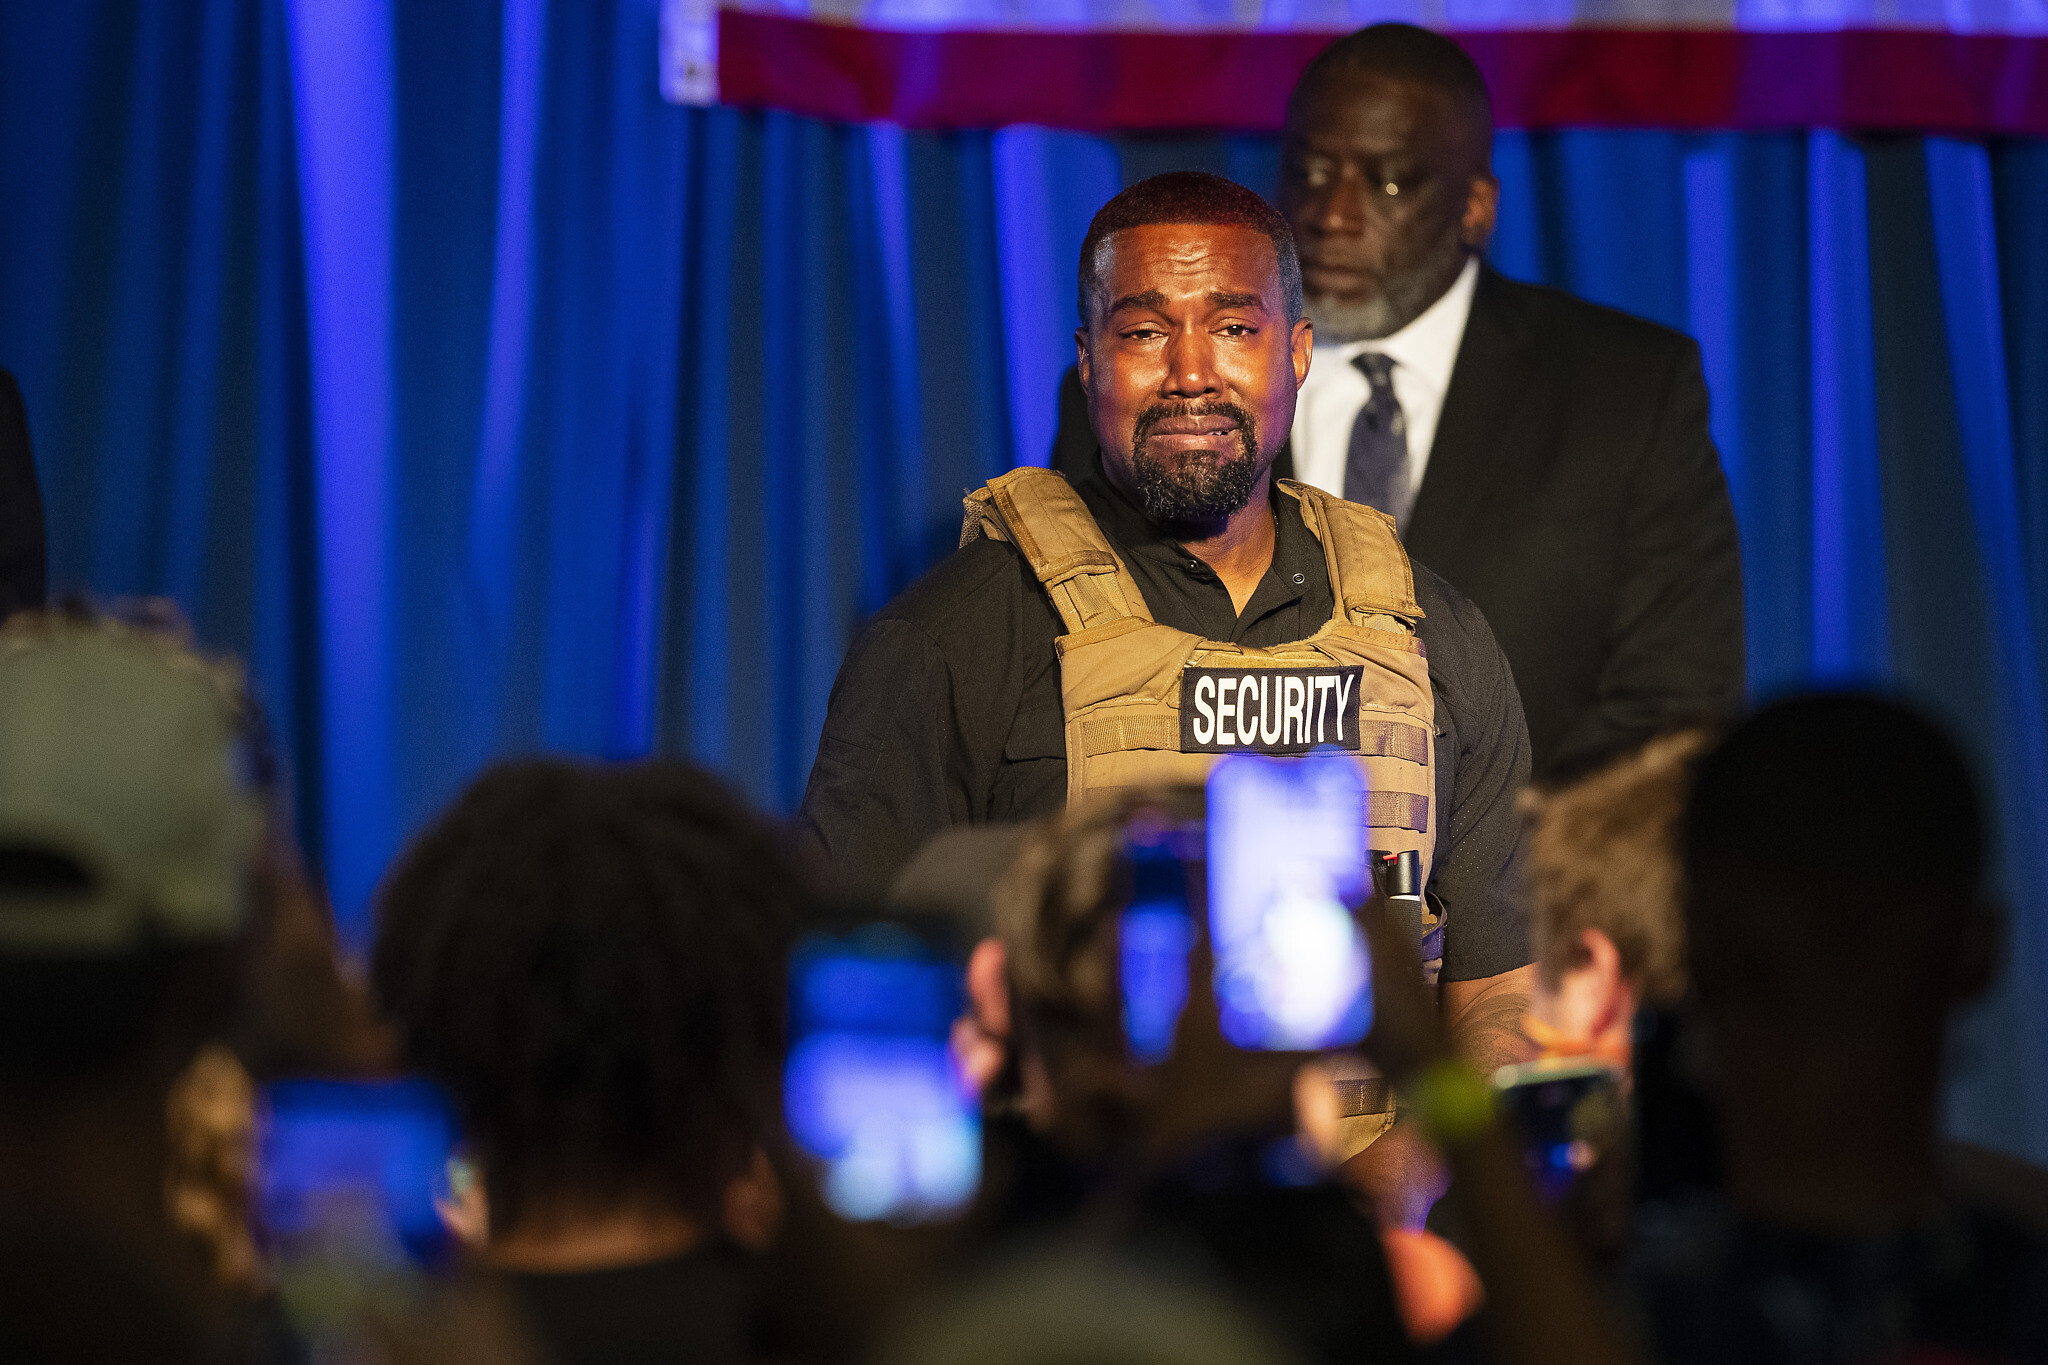 Kanye West holds chaotic opening of 2020 presidential bid